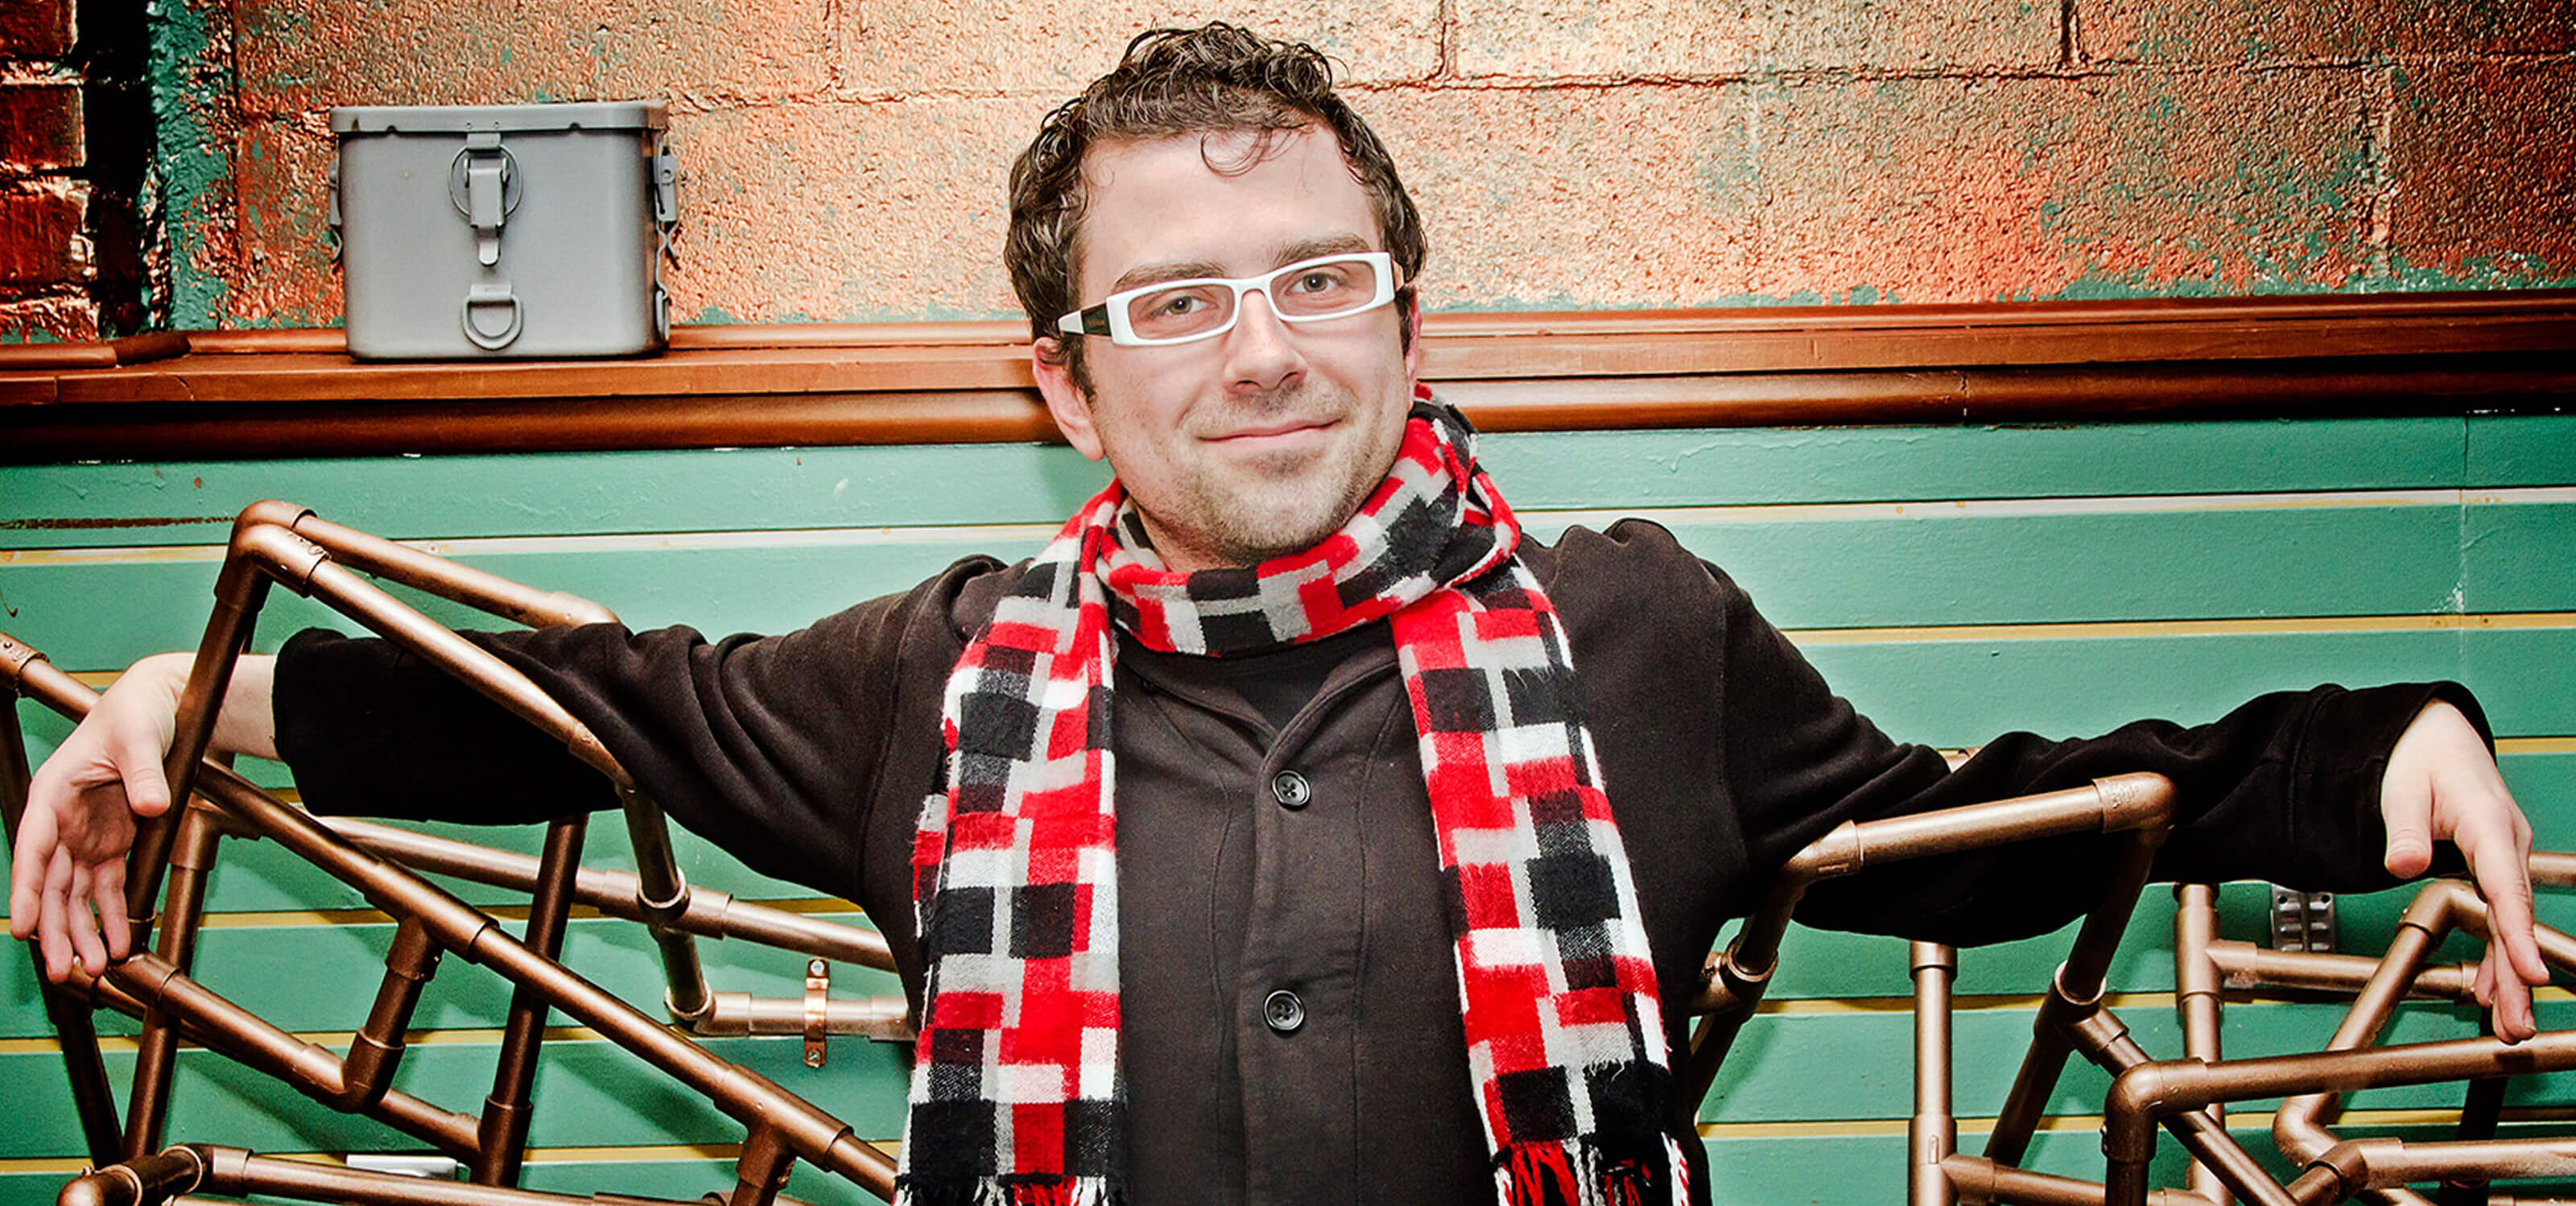 DigiPen alumnus Nate Martin in a plaid scarf, black coat and white-framed glasses with a prop made of bronze-colored pipes